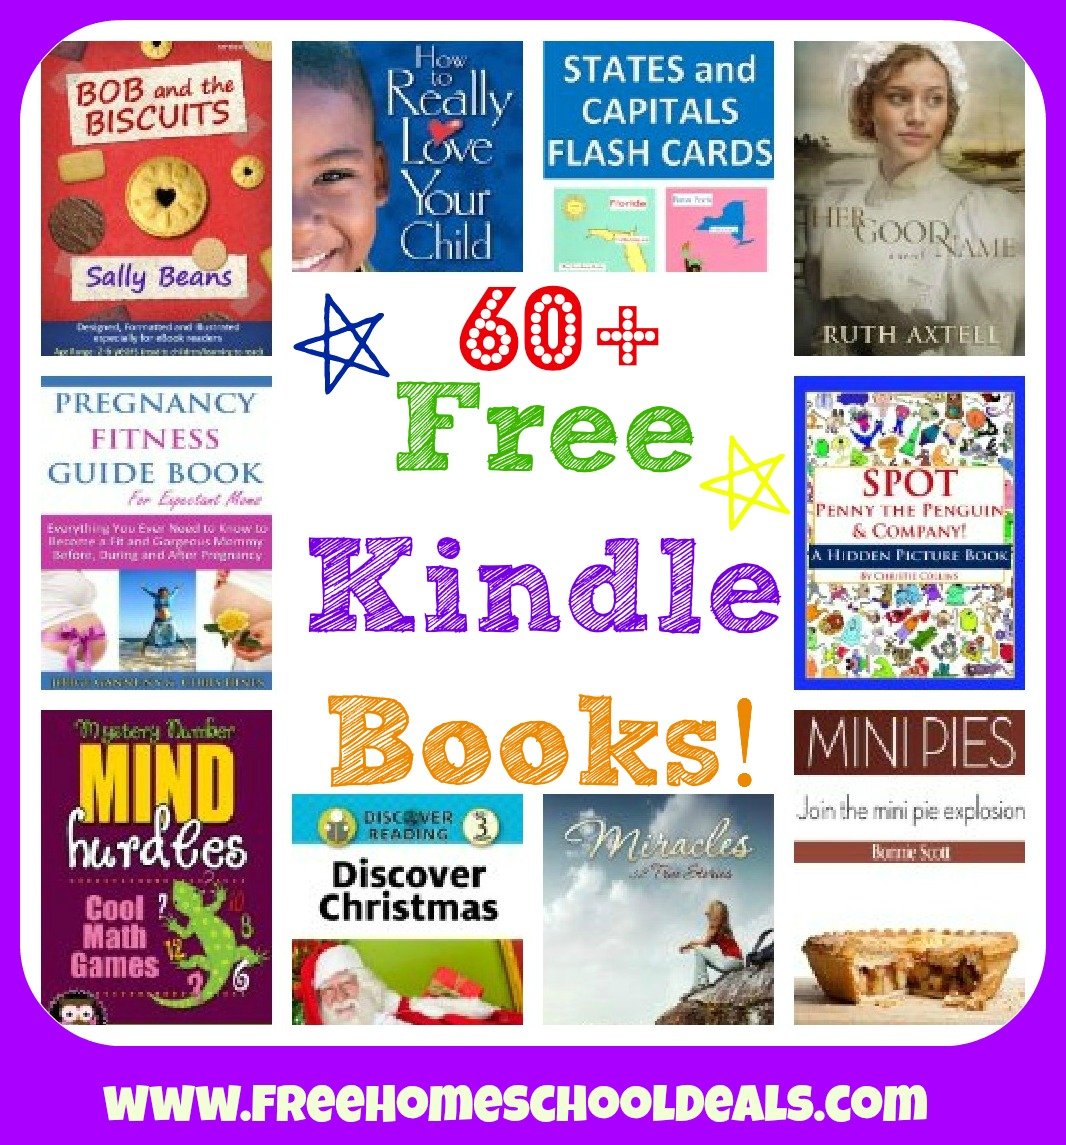 Free Kindle Books Cool Math Games For Mathematically